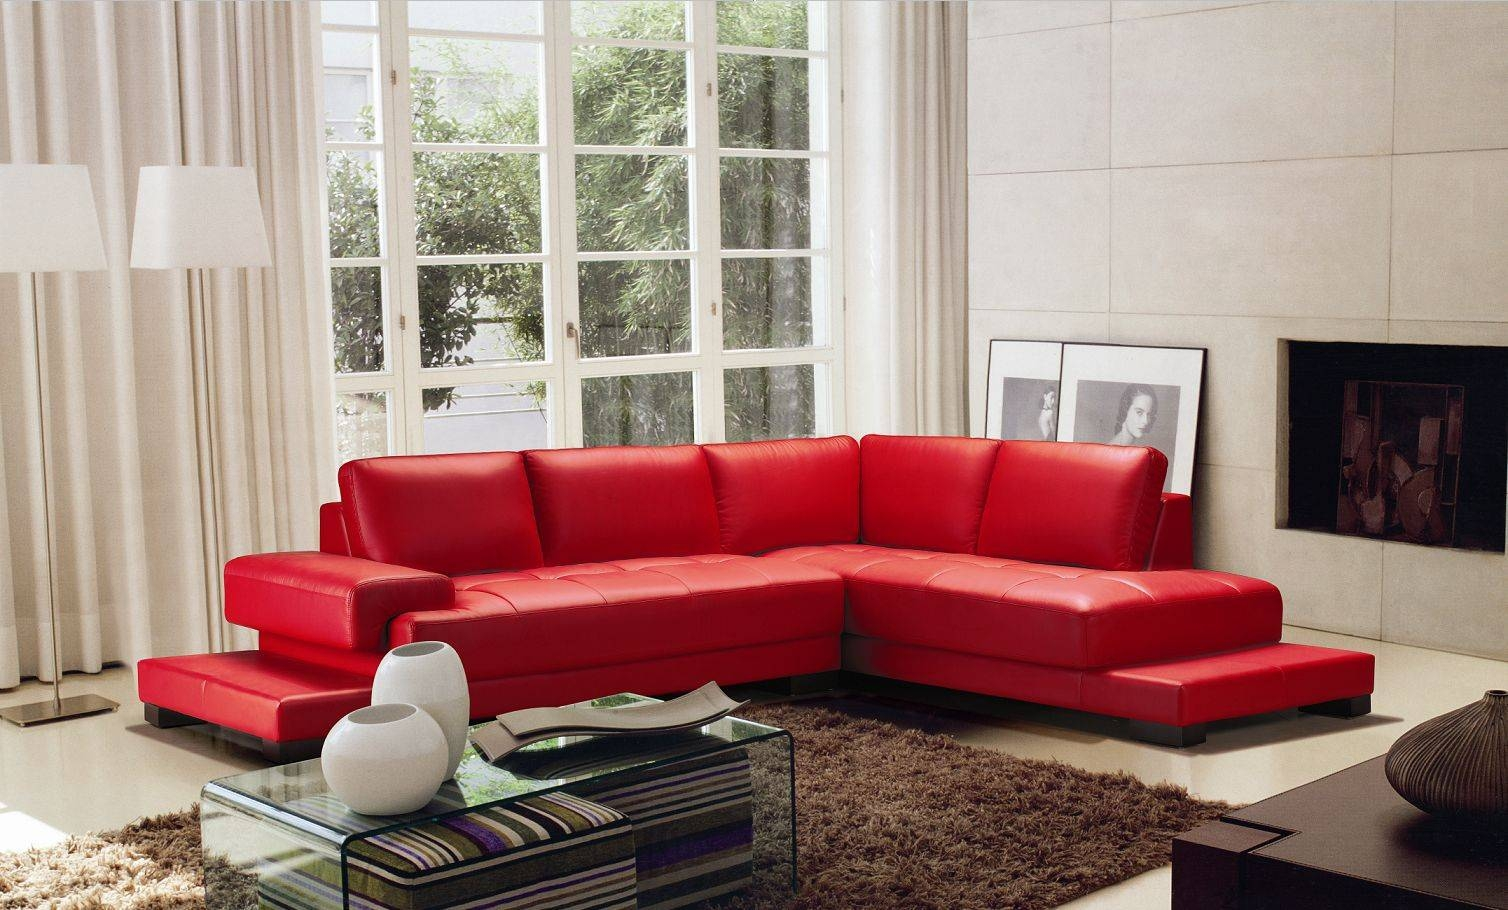 Red Sofa Set | Tehranmix Decoration regarding Red Sofas And Chairs (Image 17 of 30)